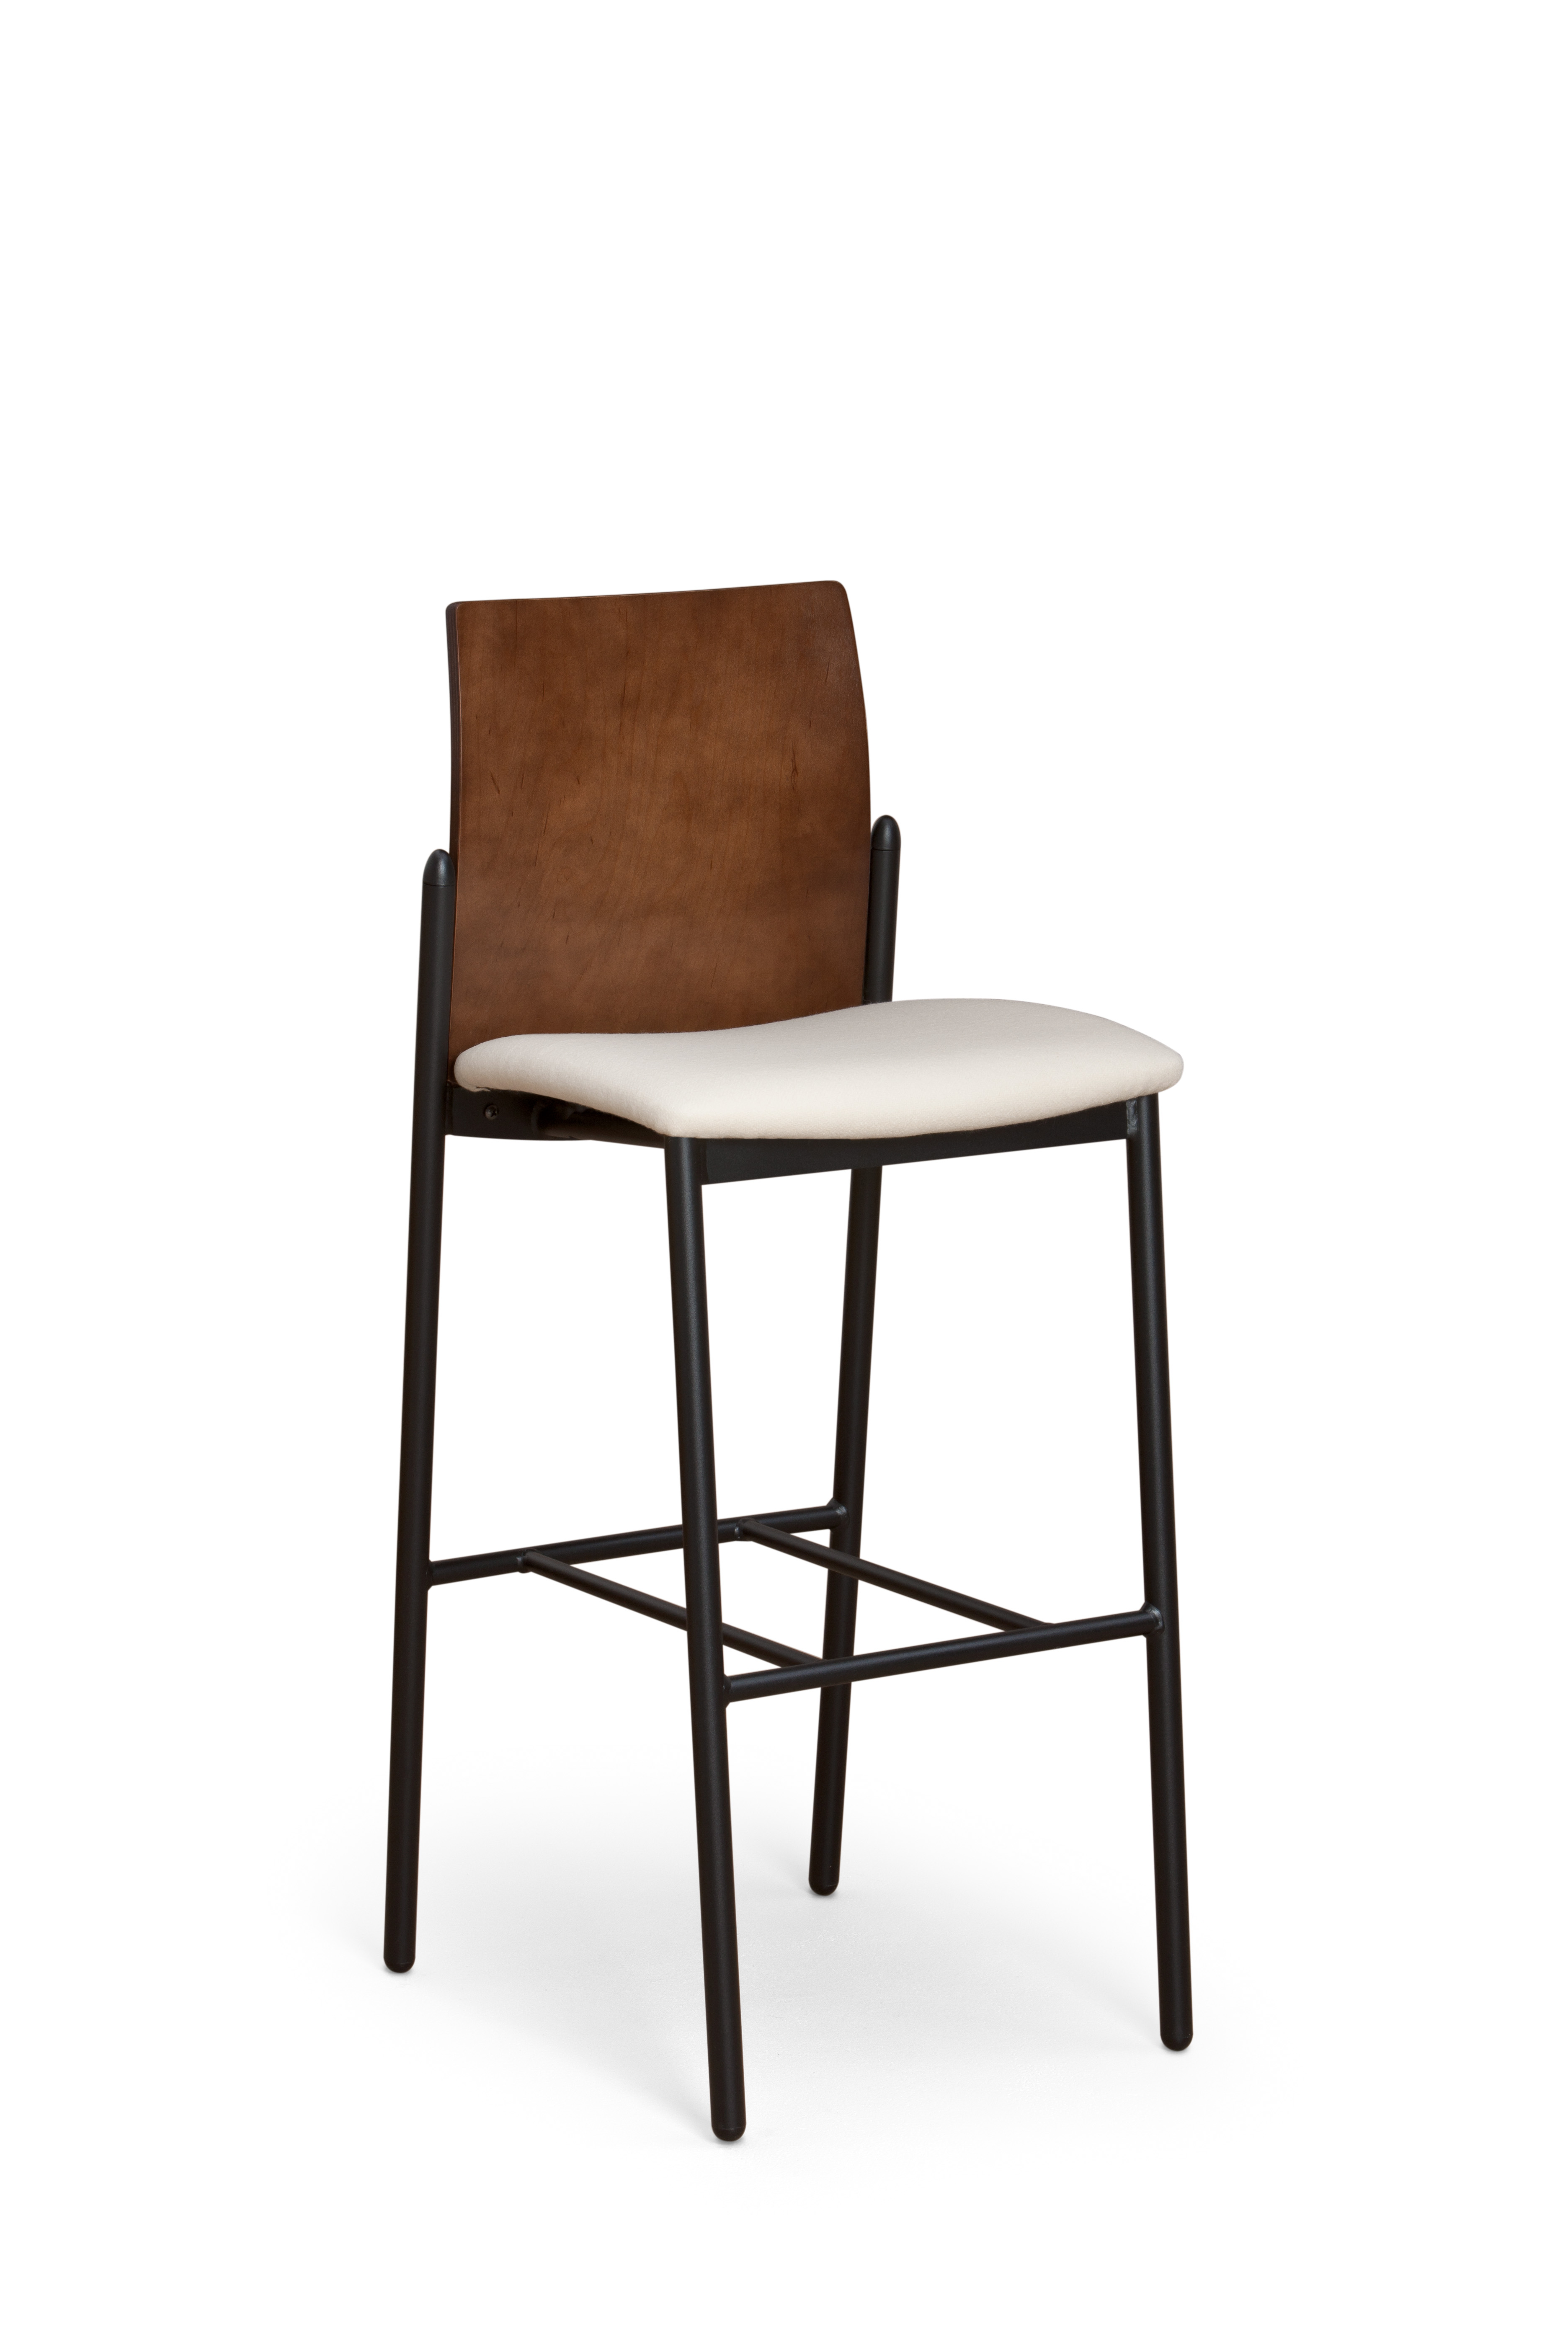 Deck stool with upholstered seat and wood back